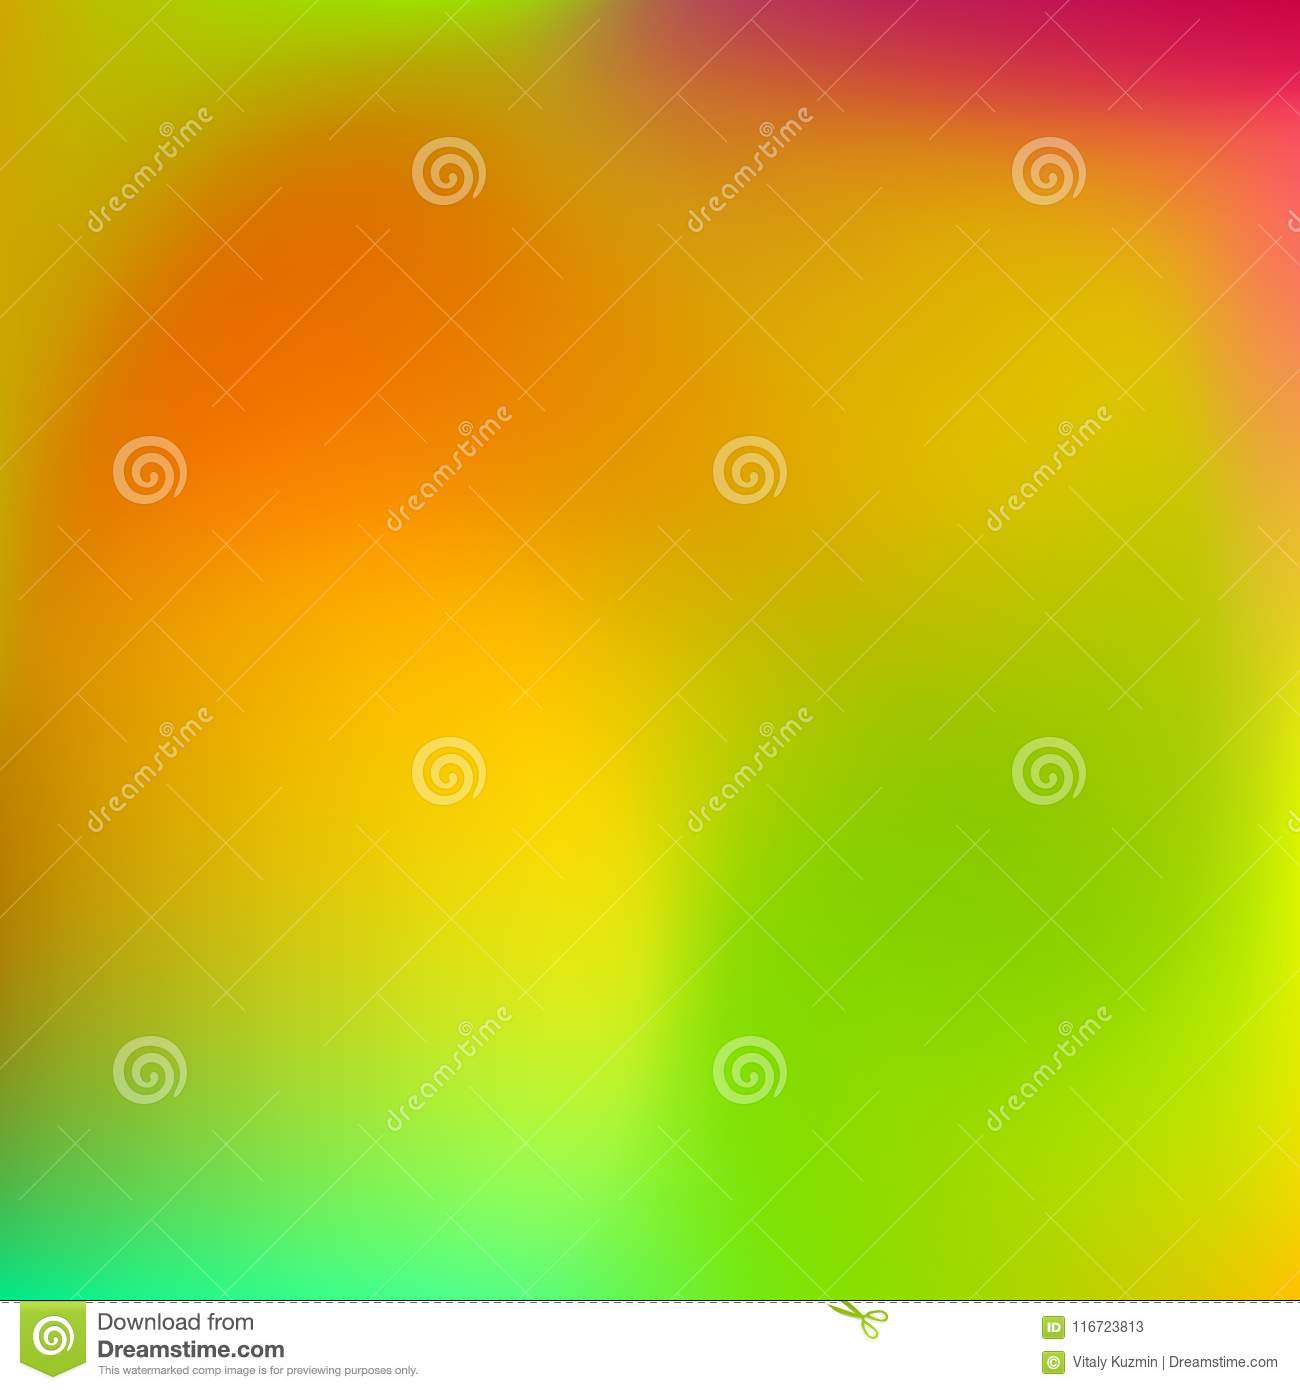 Abstract Blur Color Background Stock Vector - Illustration of modern ...